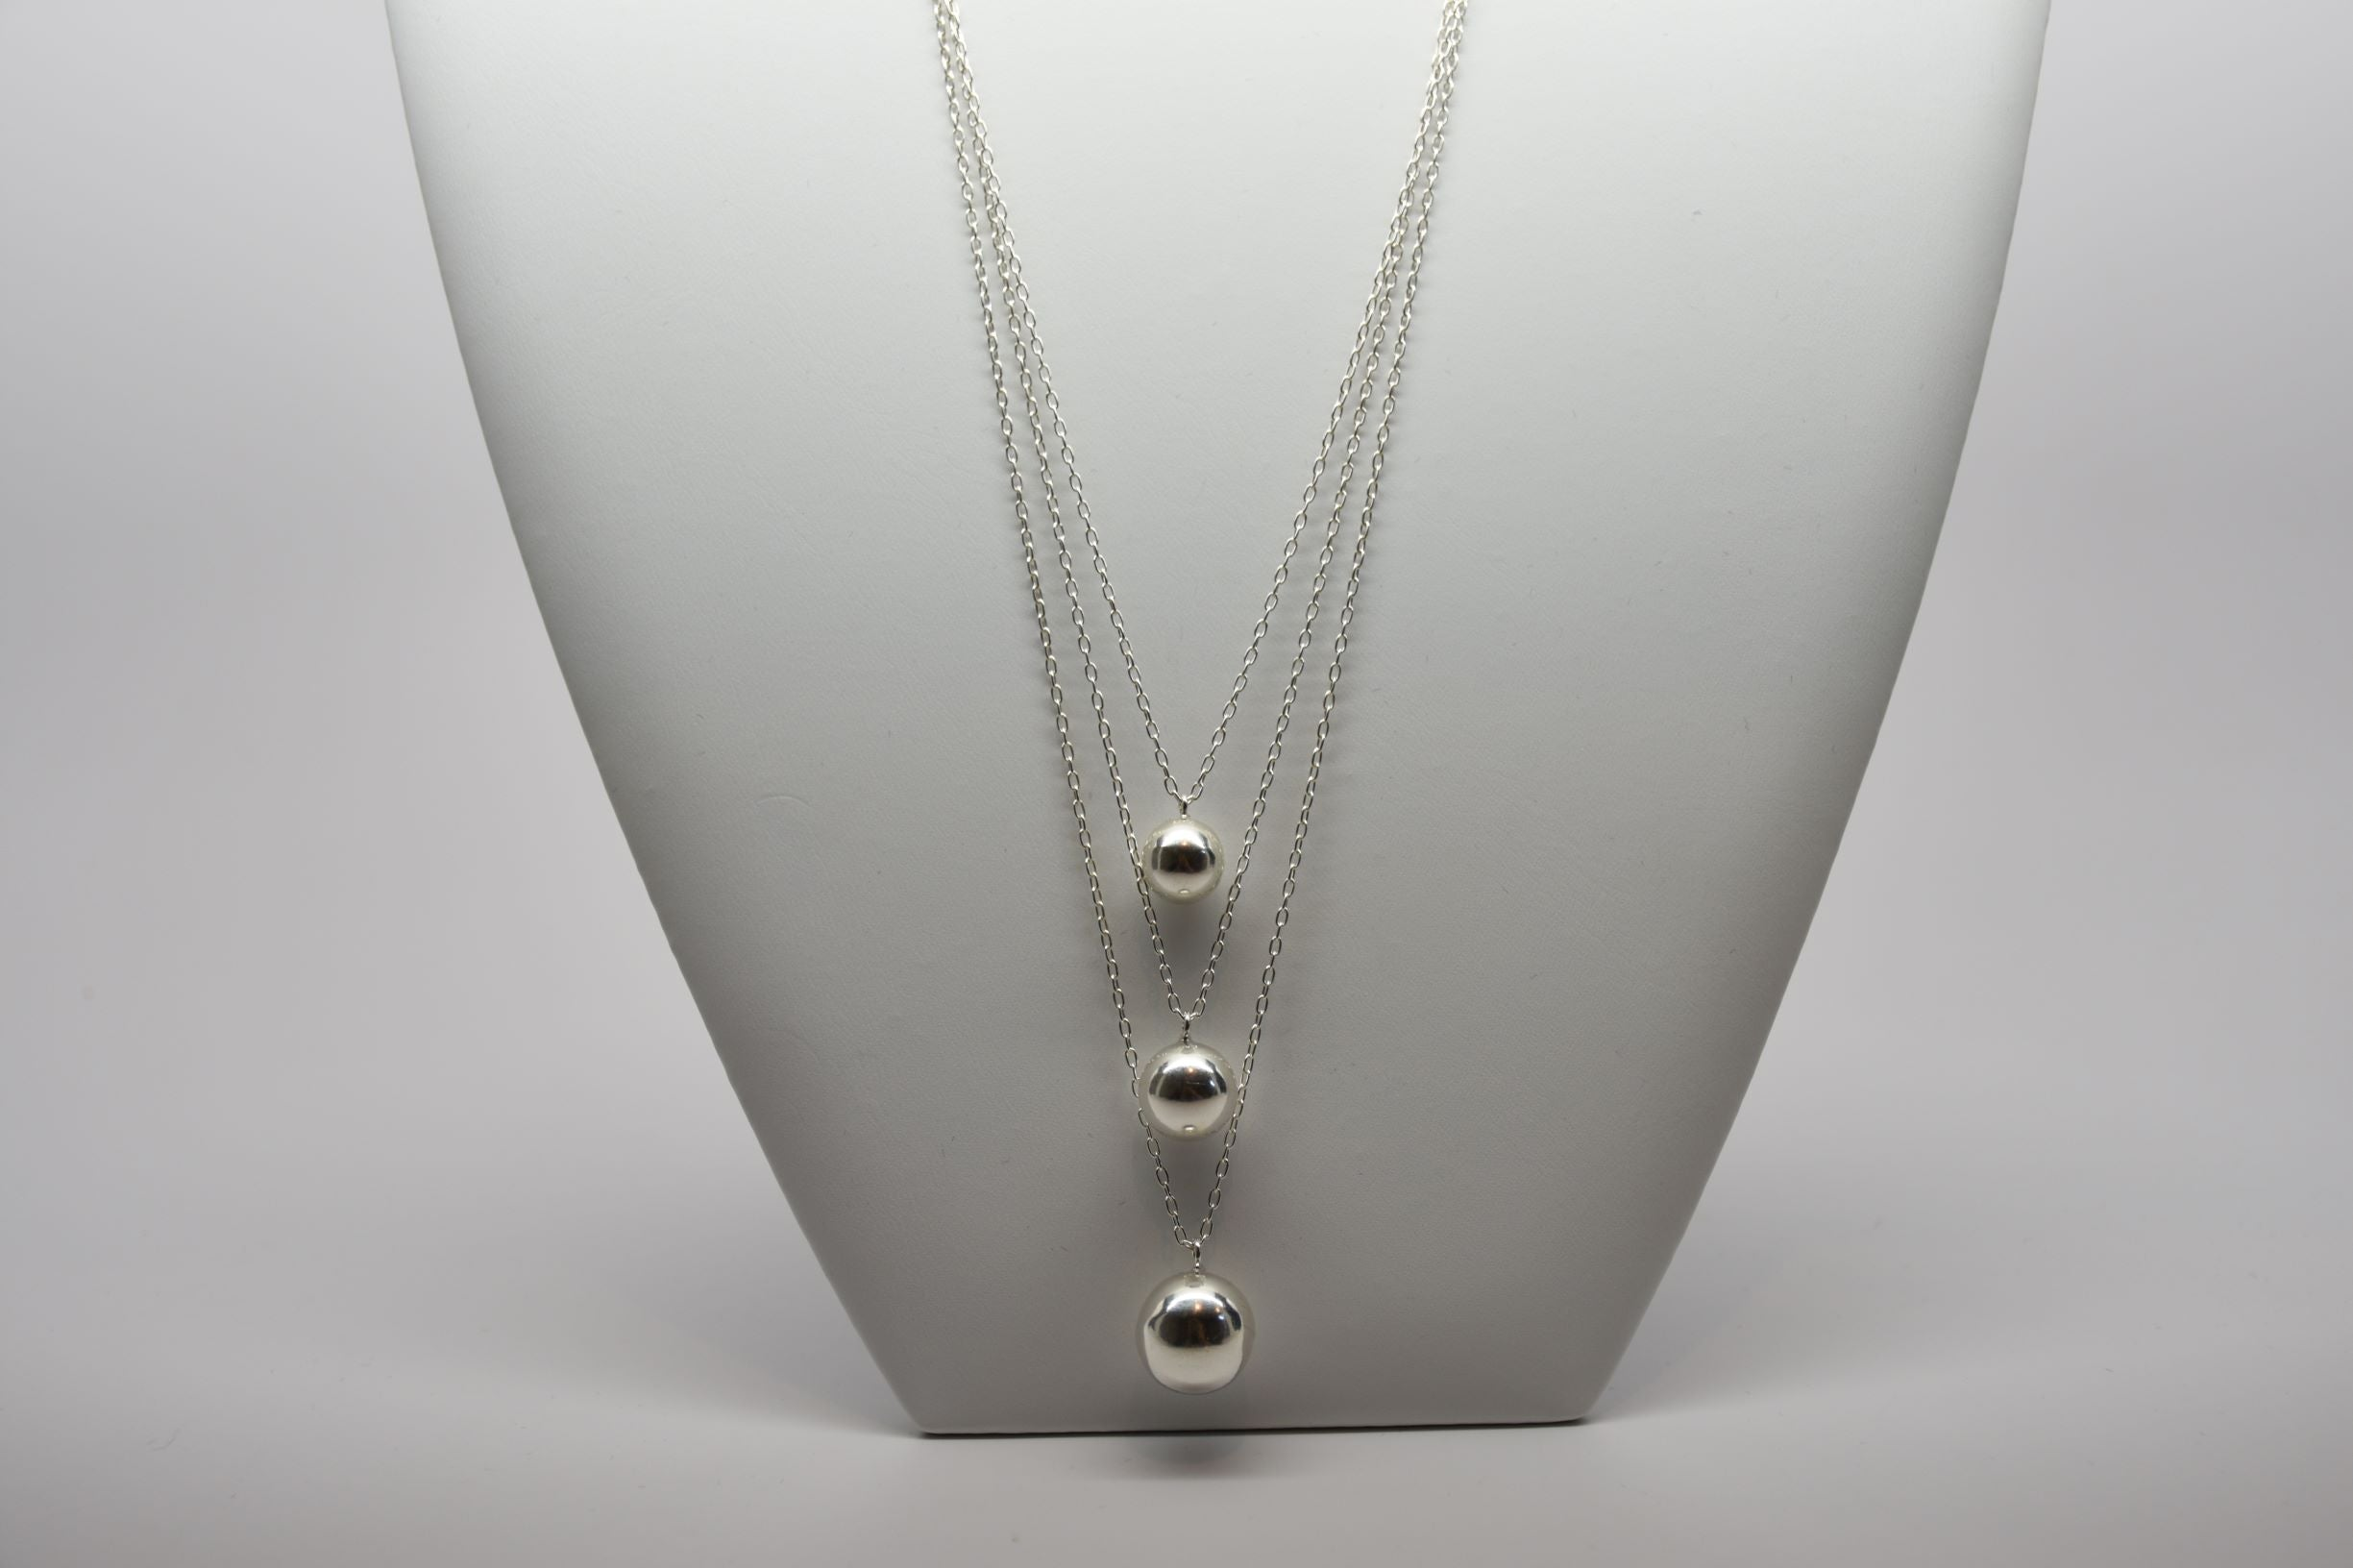 Irish Assayed Triple Sterling Silver Hallmarked Necklace N808/29/11/18